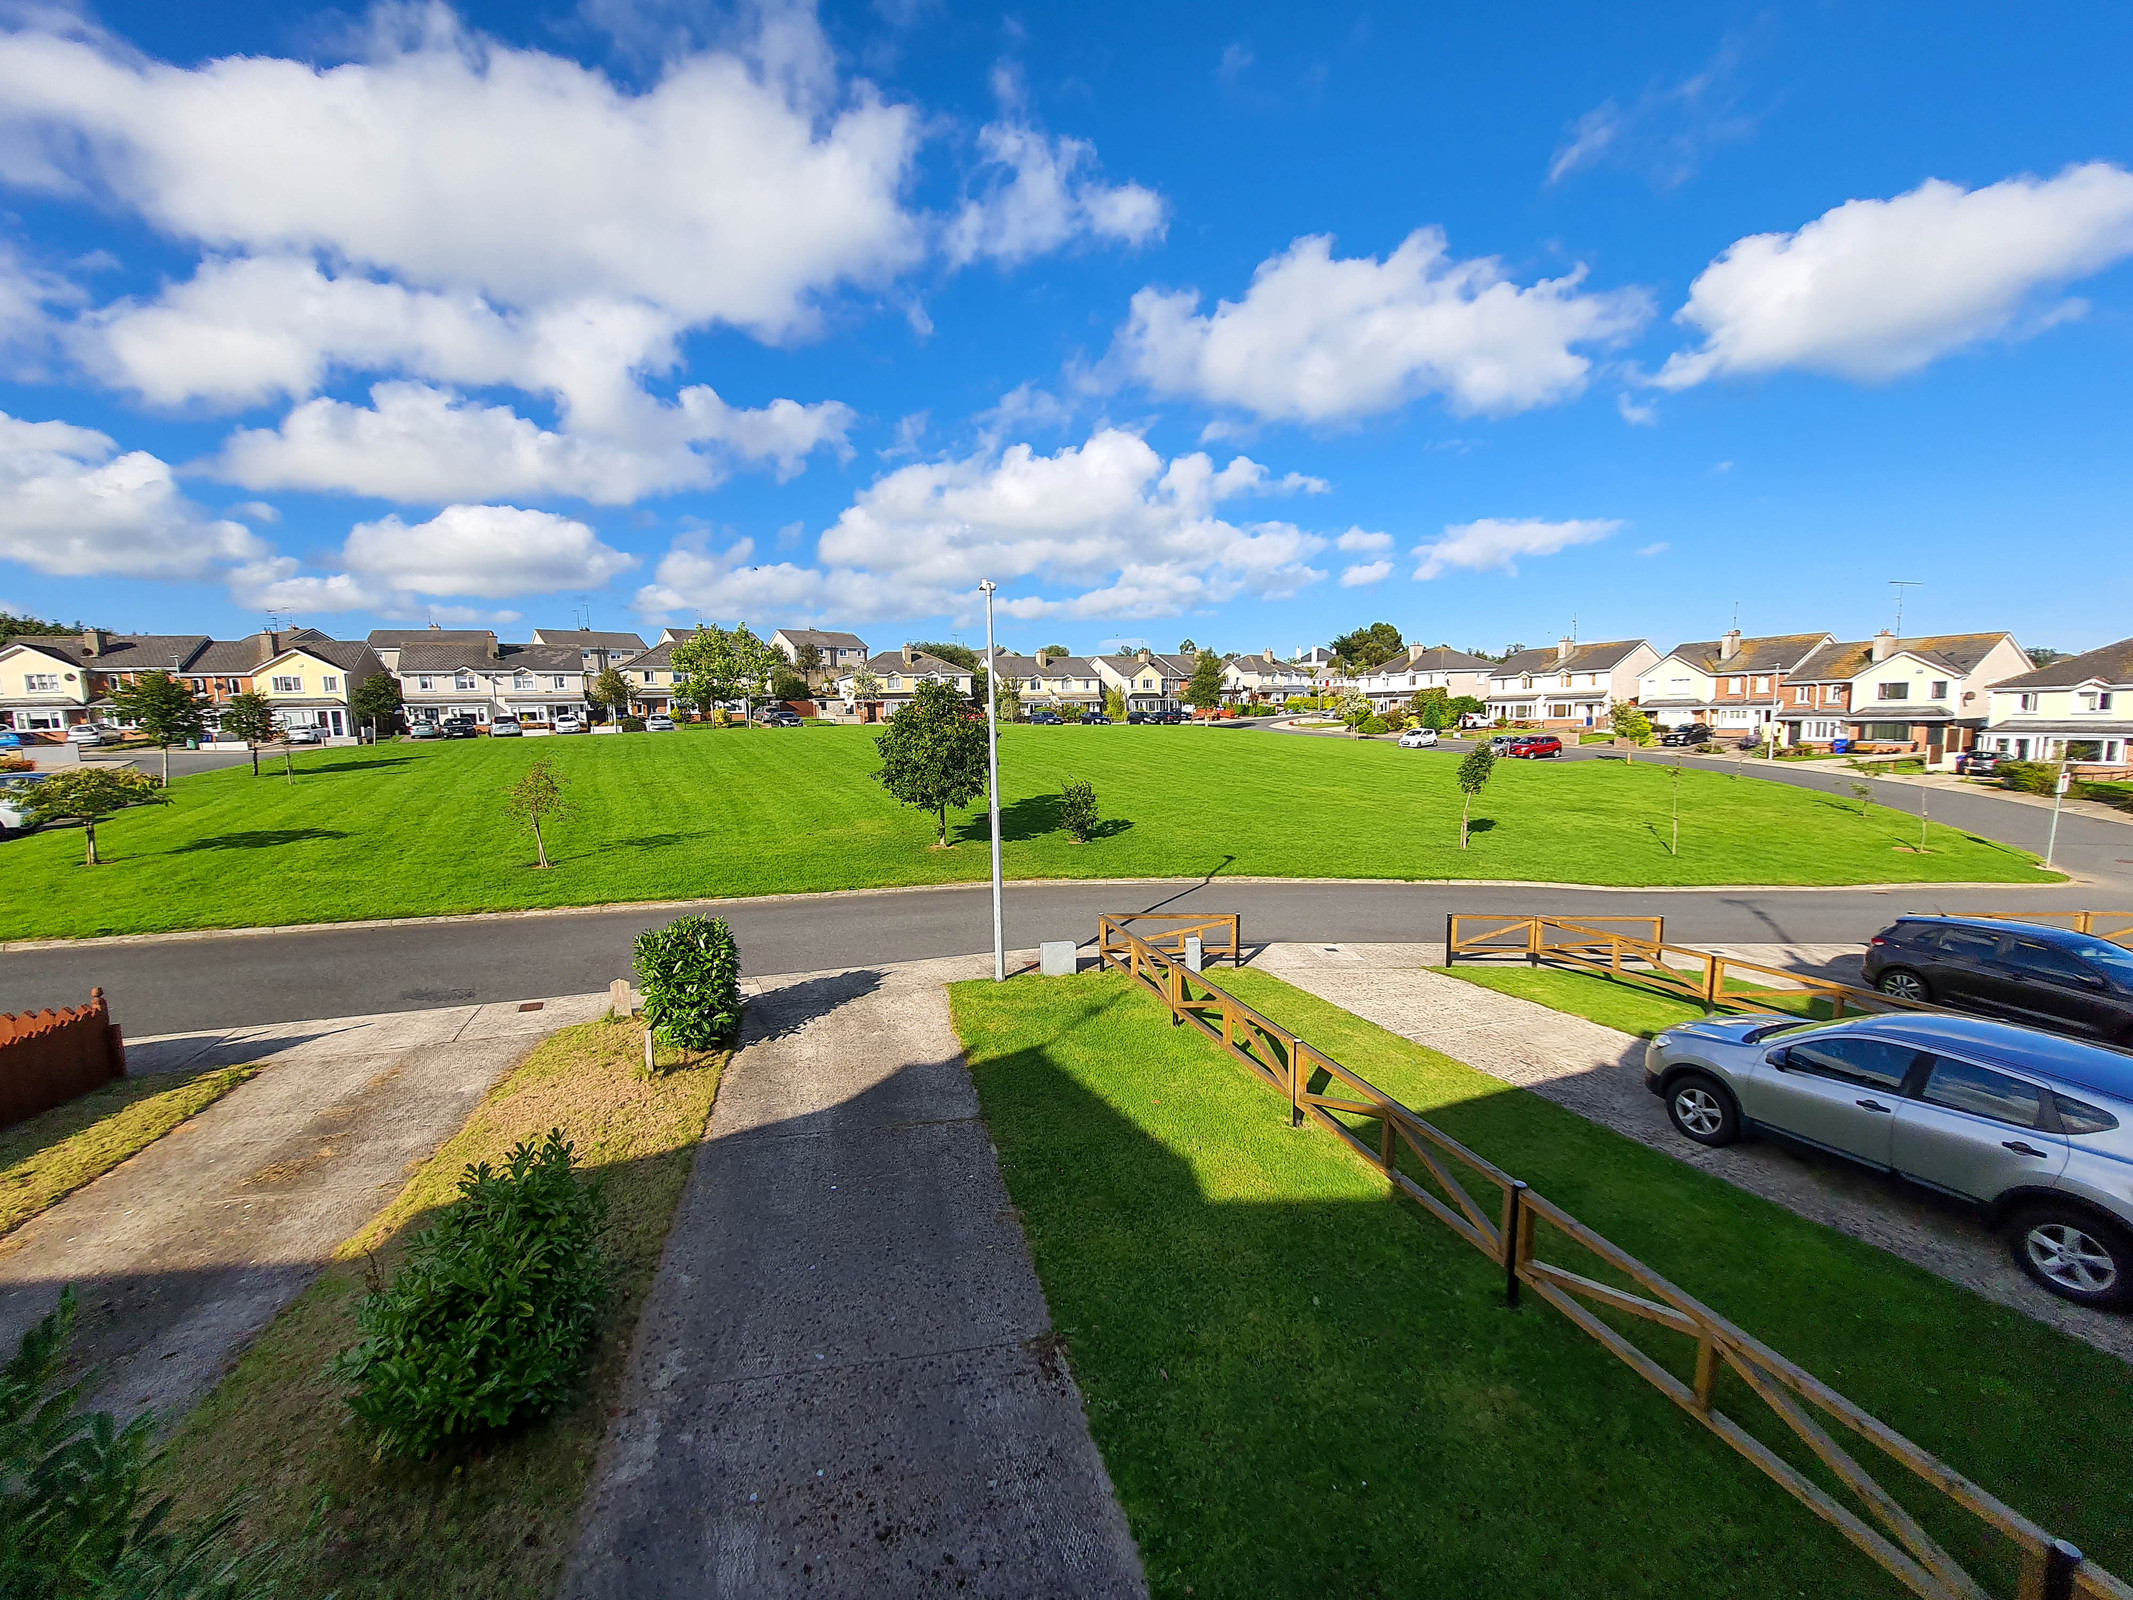 3 Riverchapel Avenue, Gorey, Co. Wexford